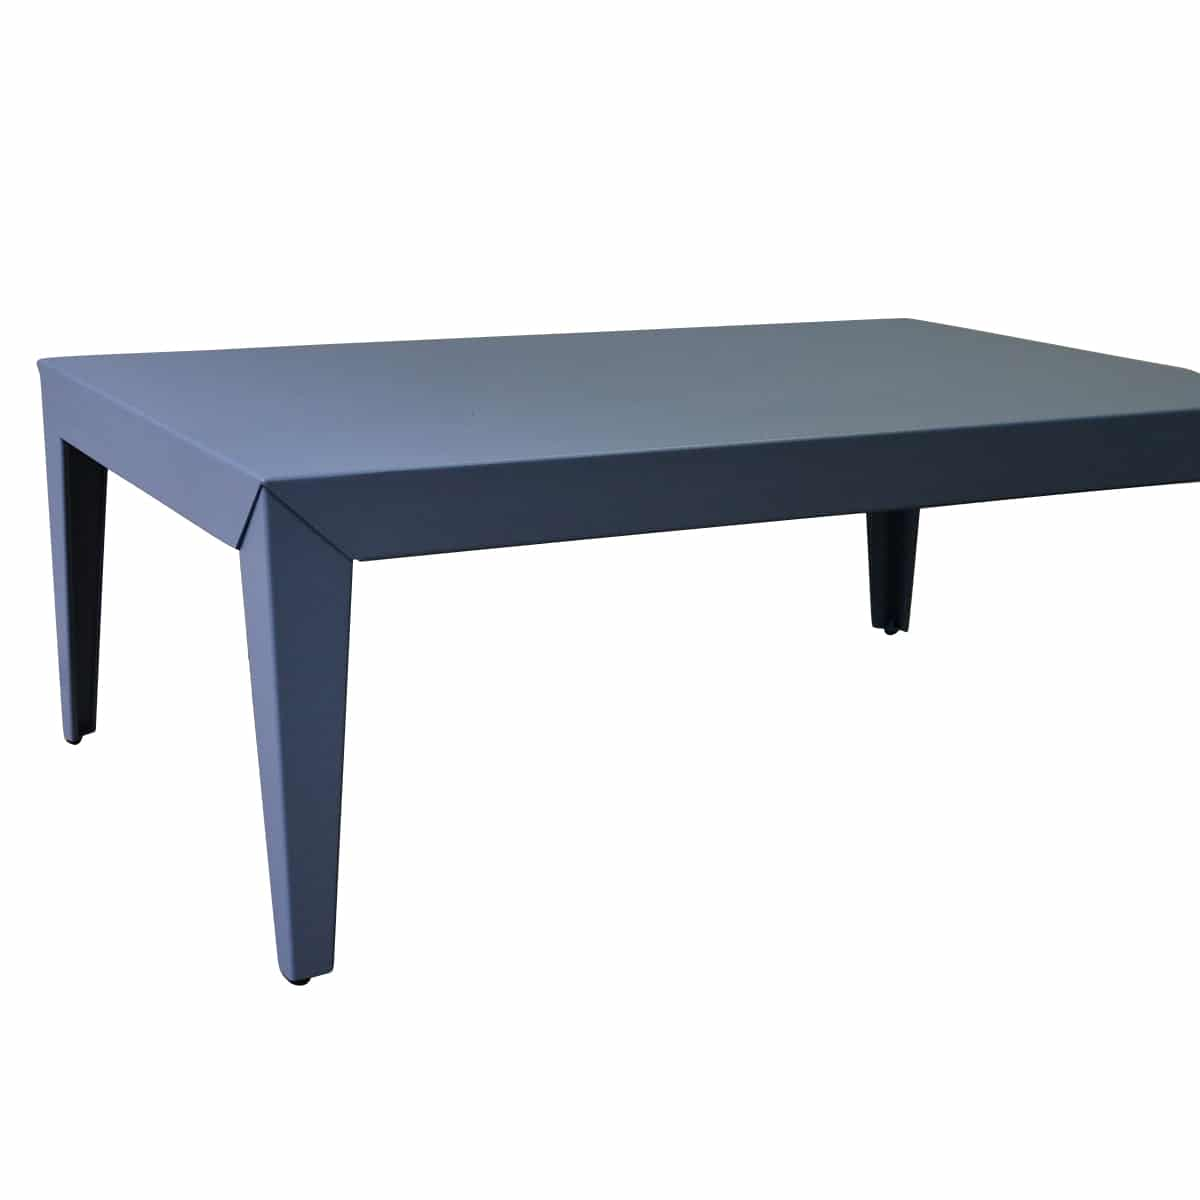 table basse zef bleu mati re grise pas cher grandes marques en promo sur zeeloft. Black Bedroom Furniture Sets. Home Design Ideas